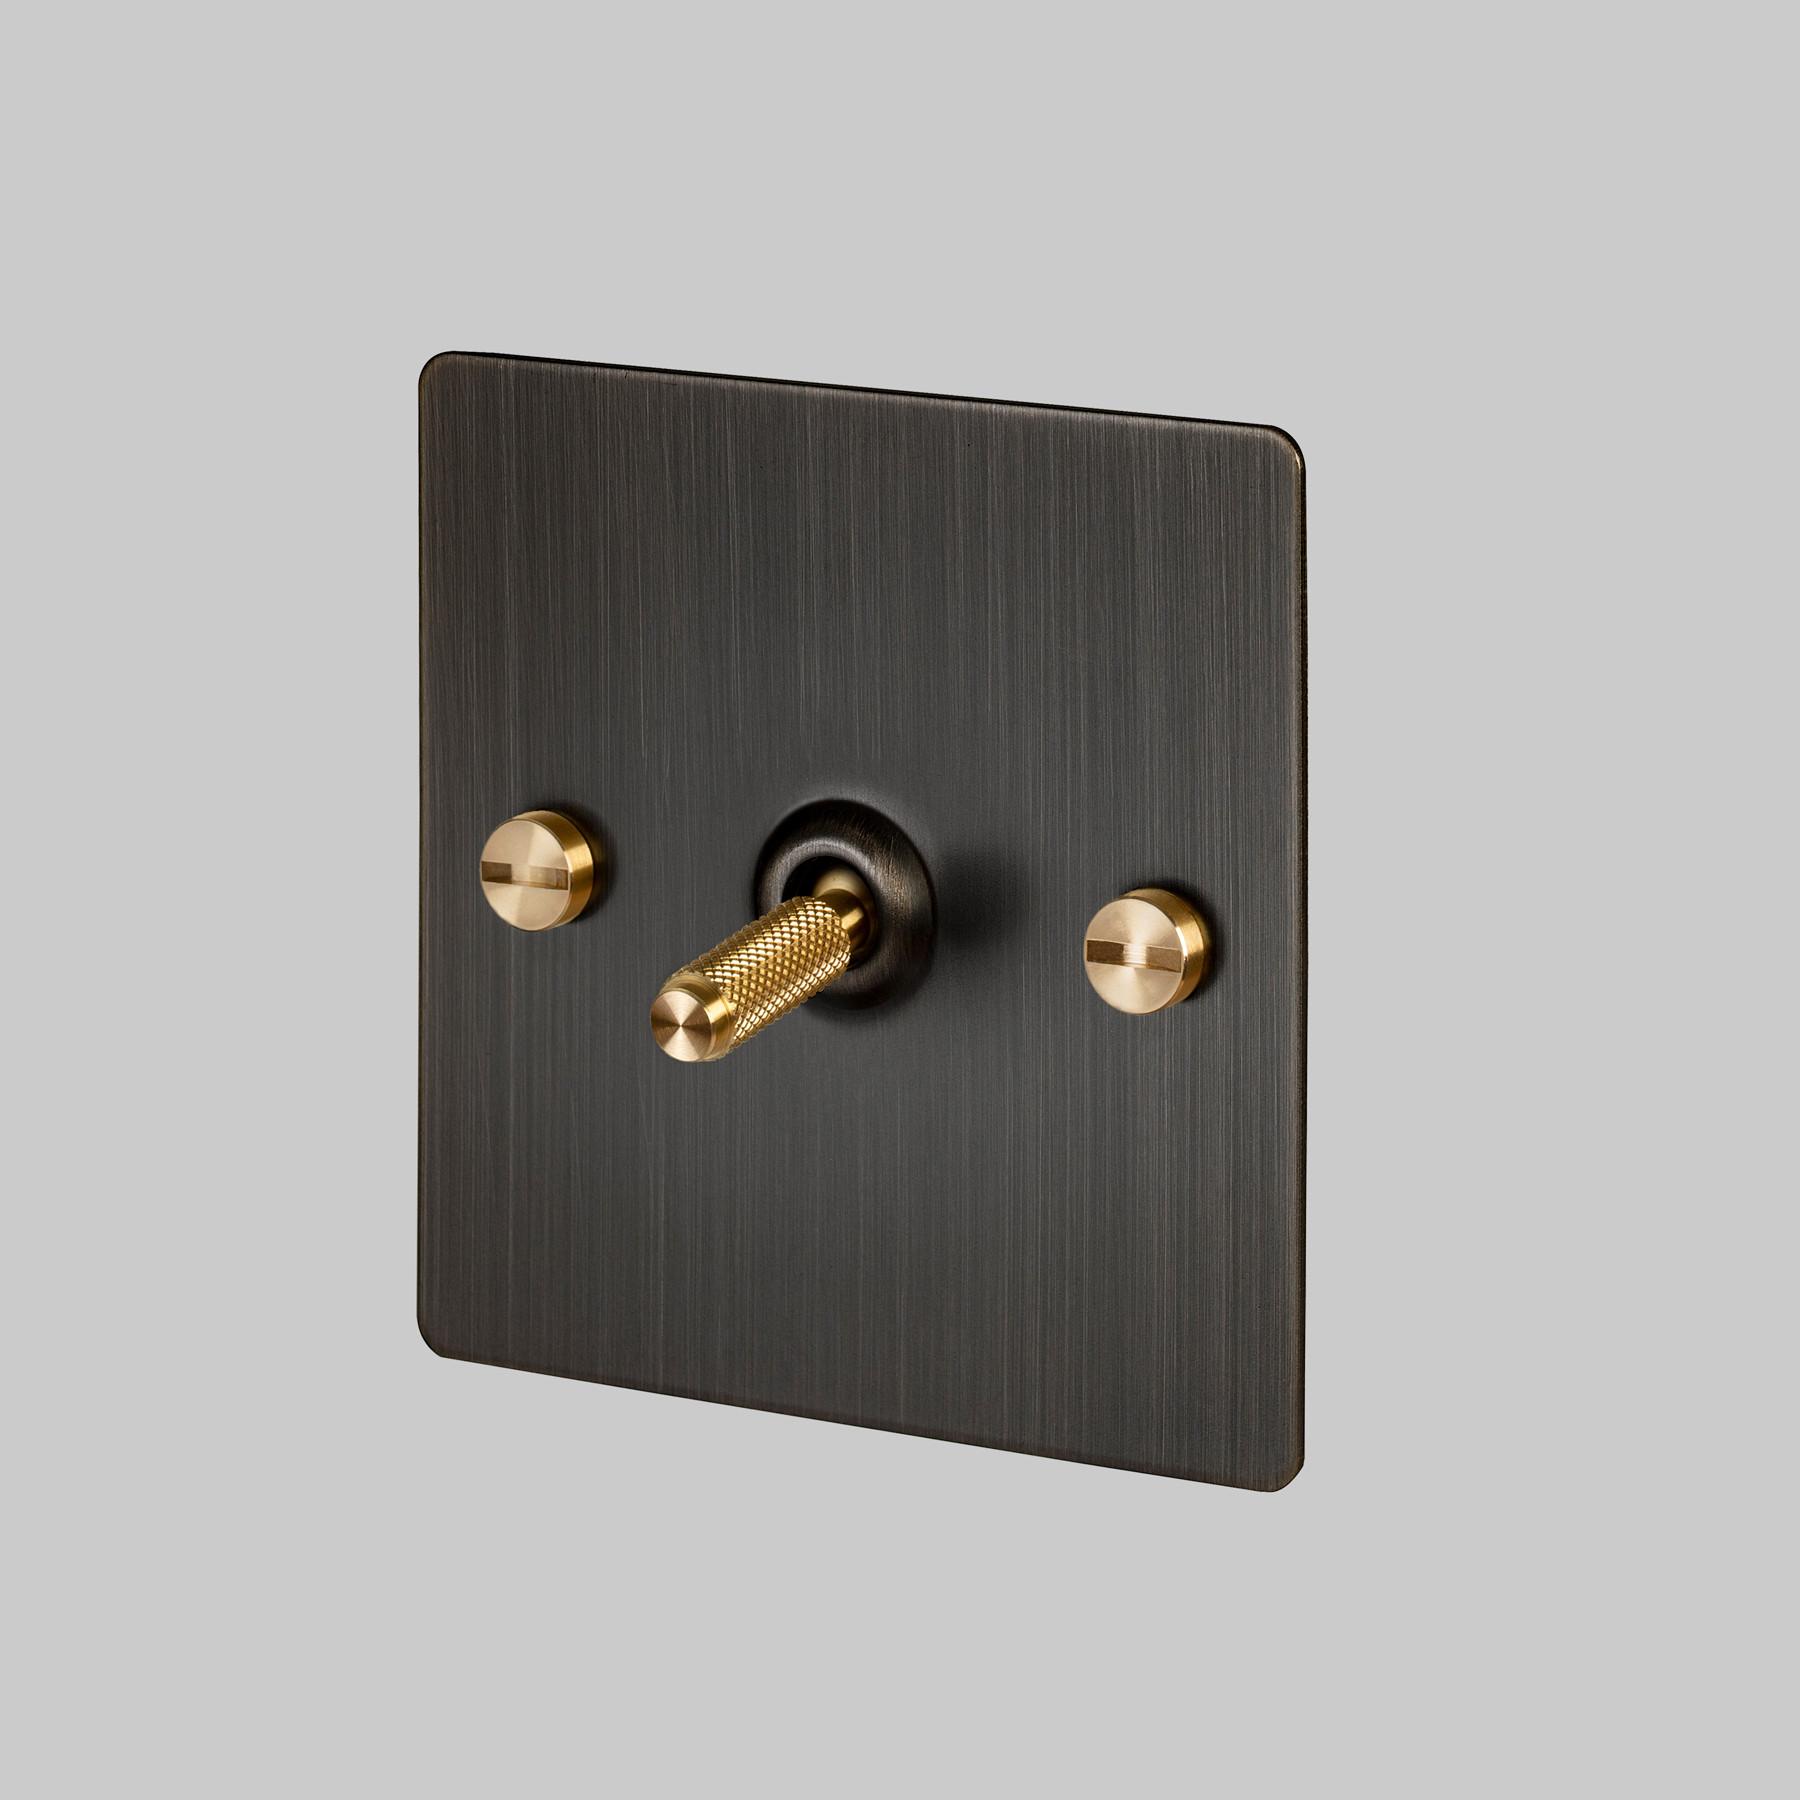 1G TOGGLE SWITCH / SMOKED BRONZE / BRASS